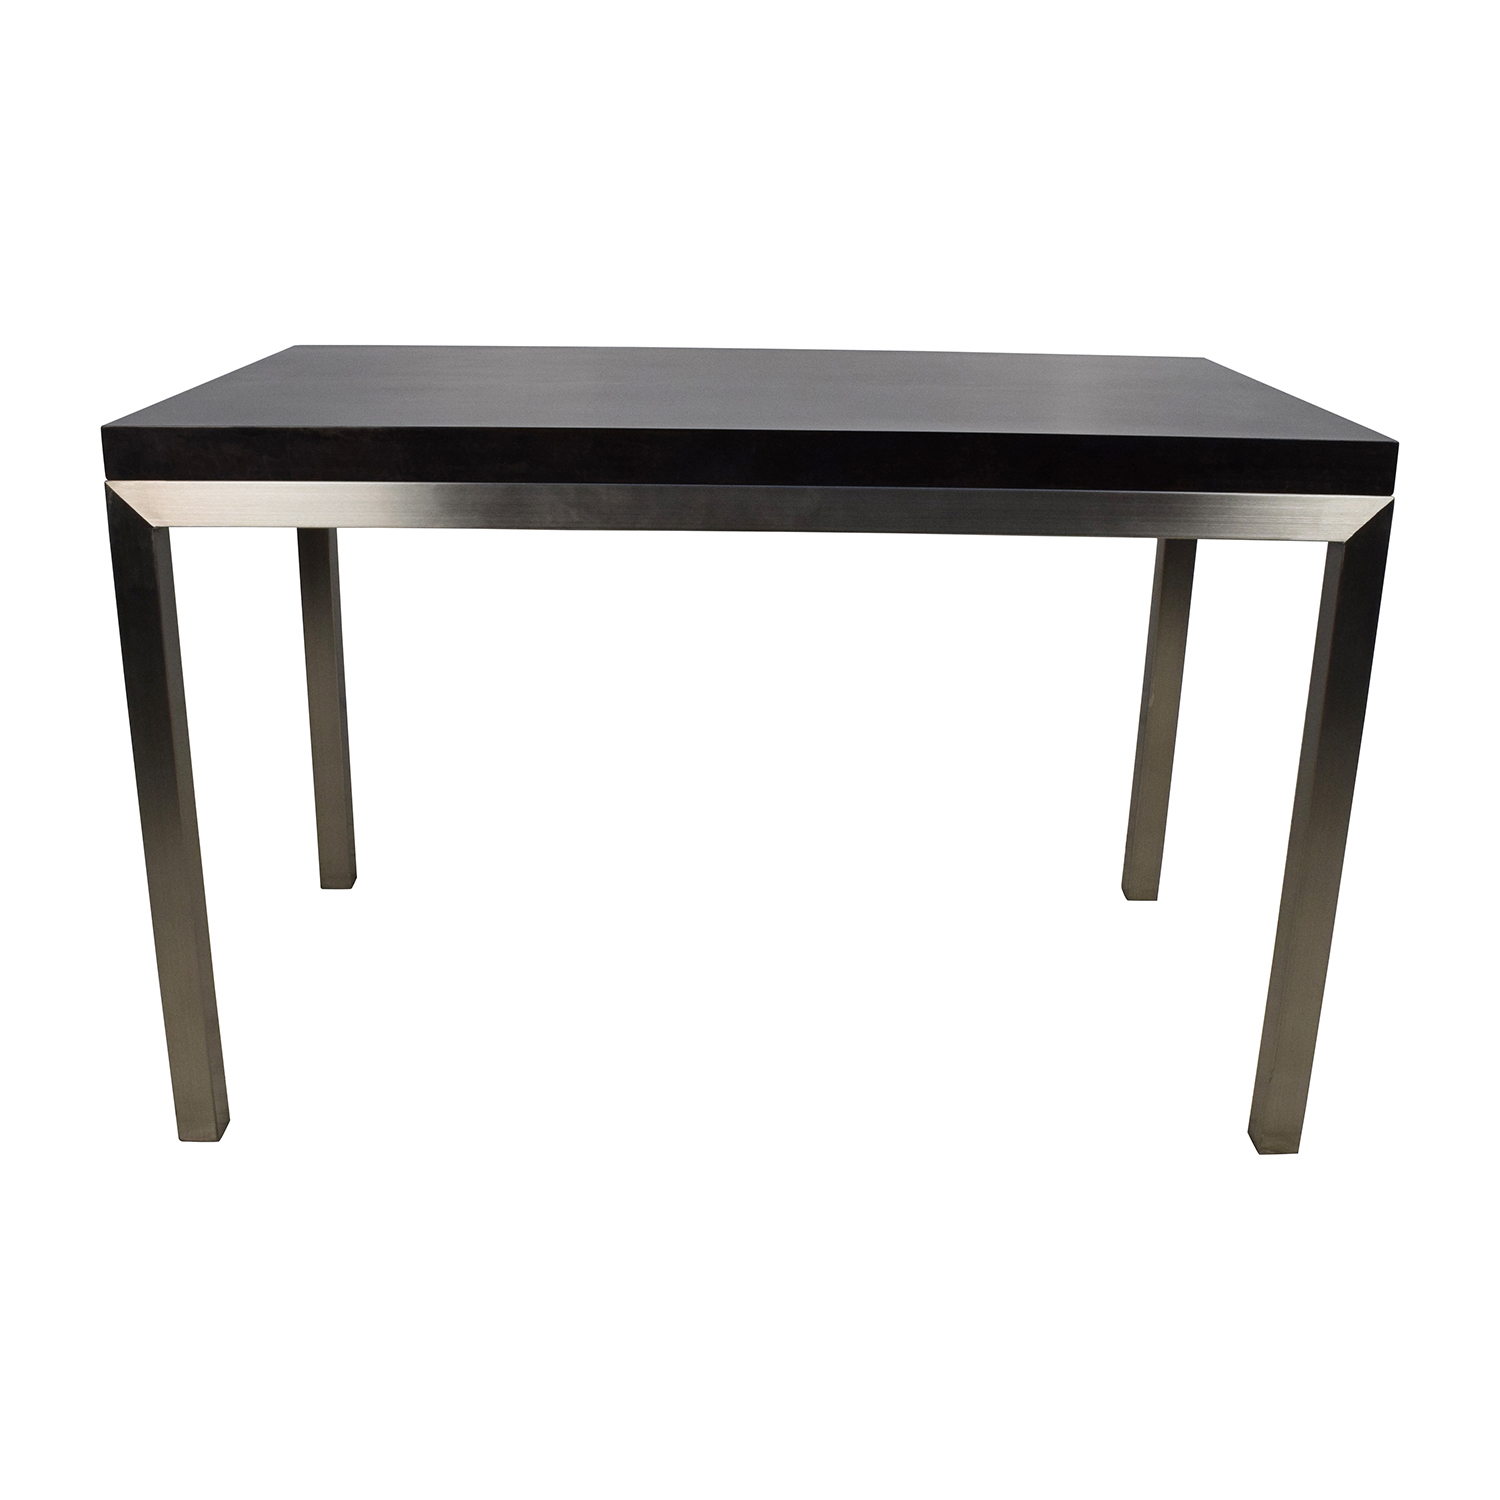 Crate & Barrel Parsons Dining Table Crate and Barrel